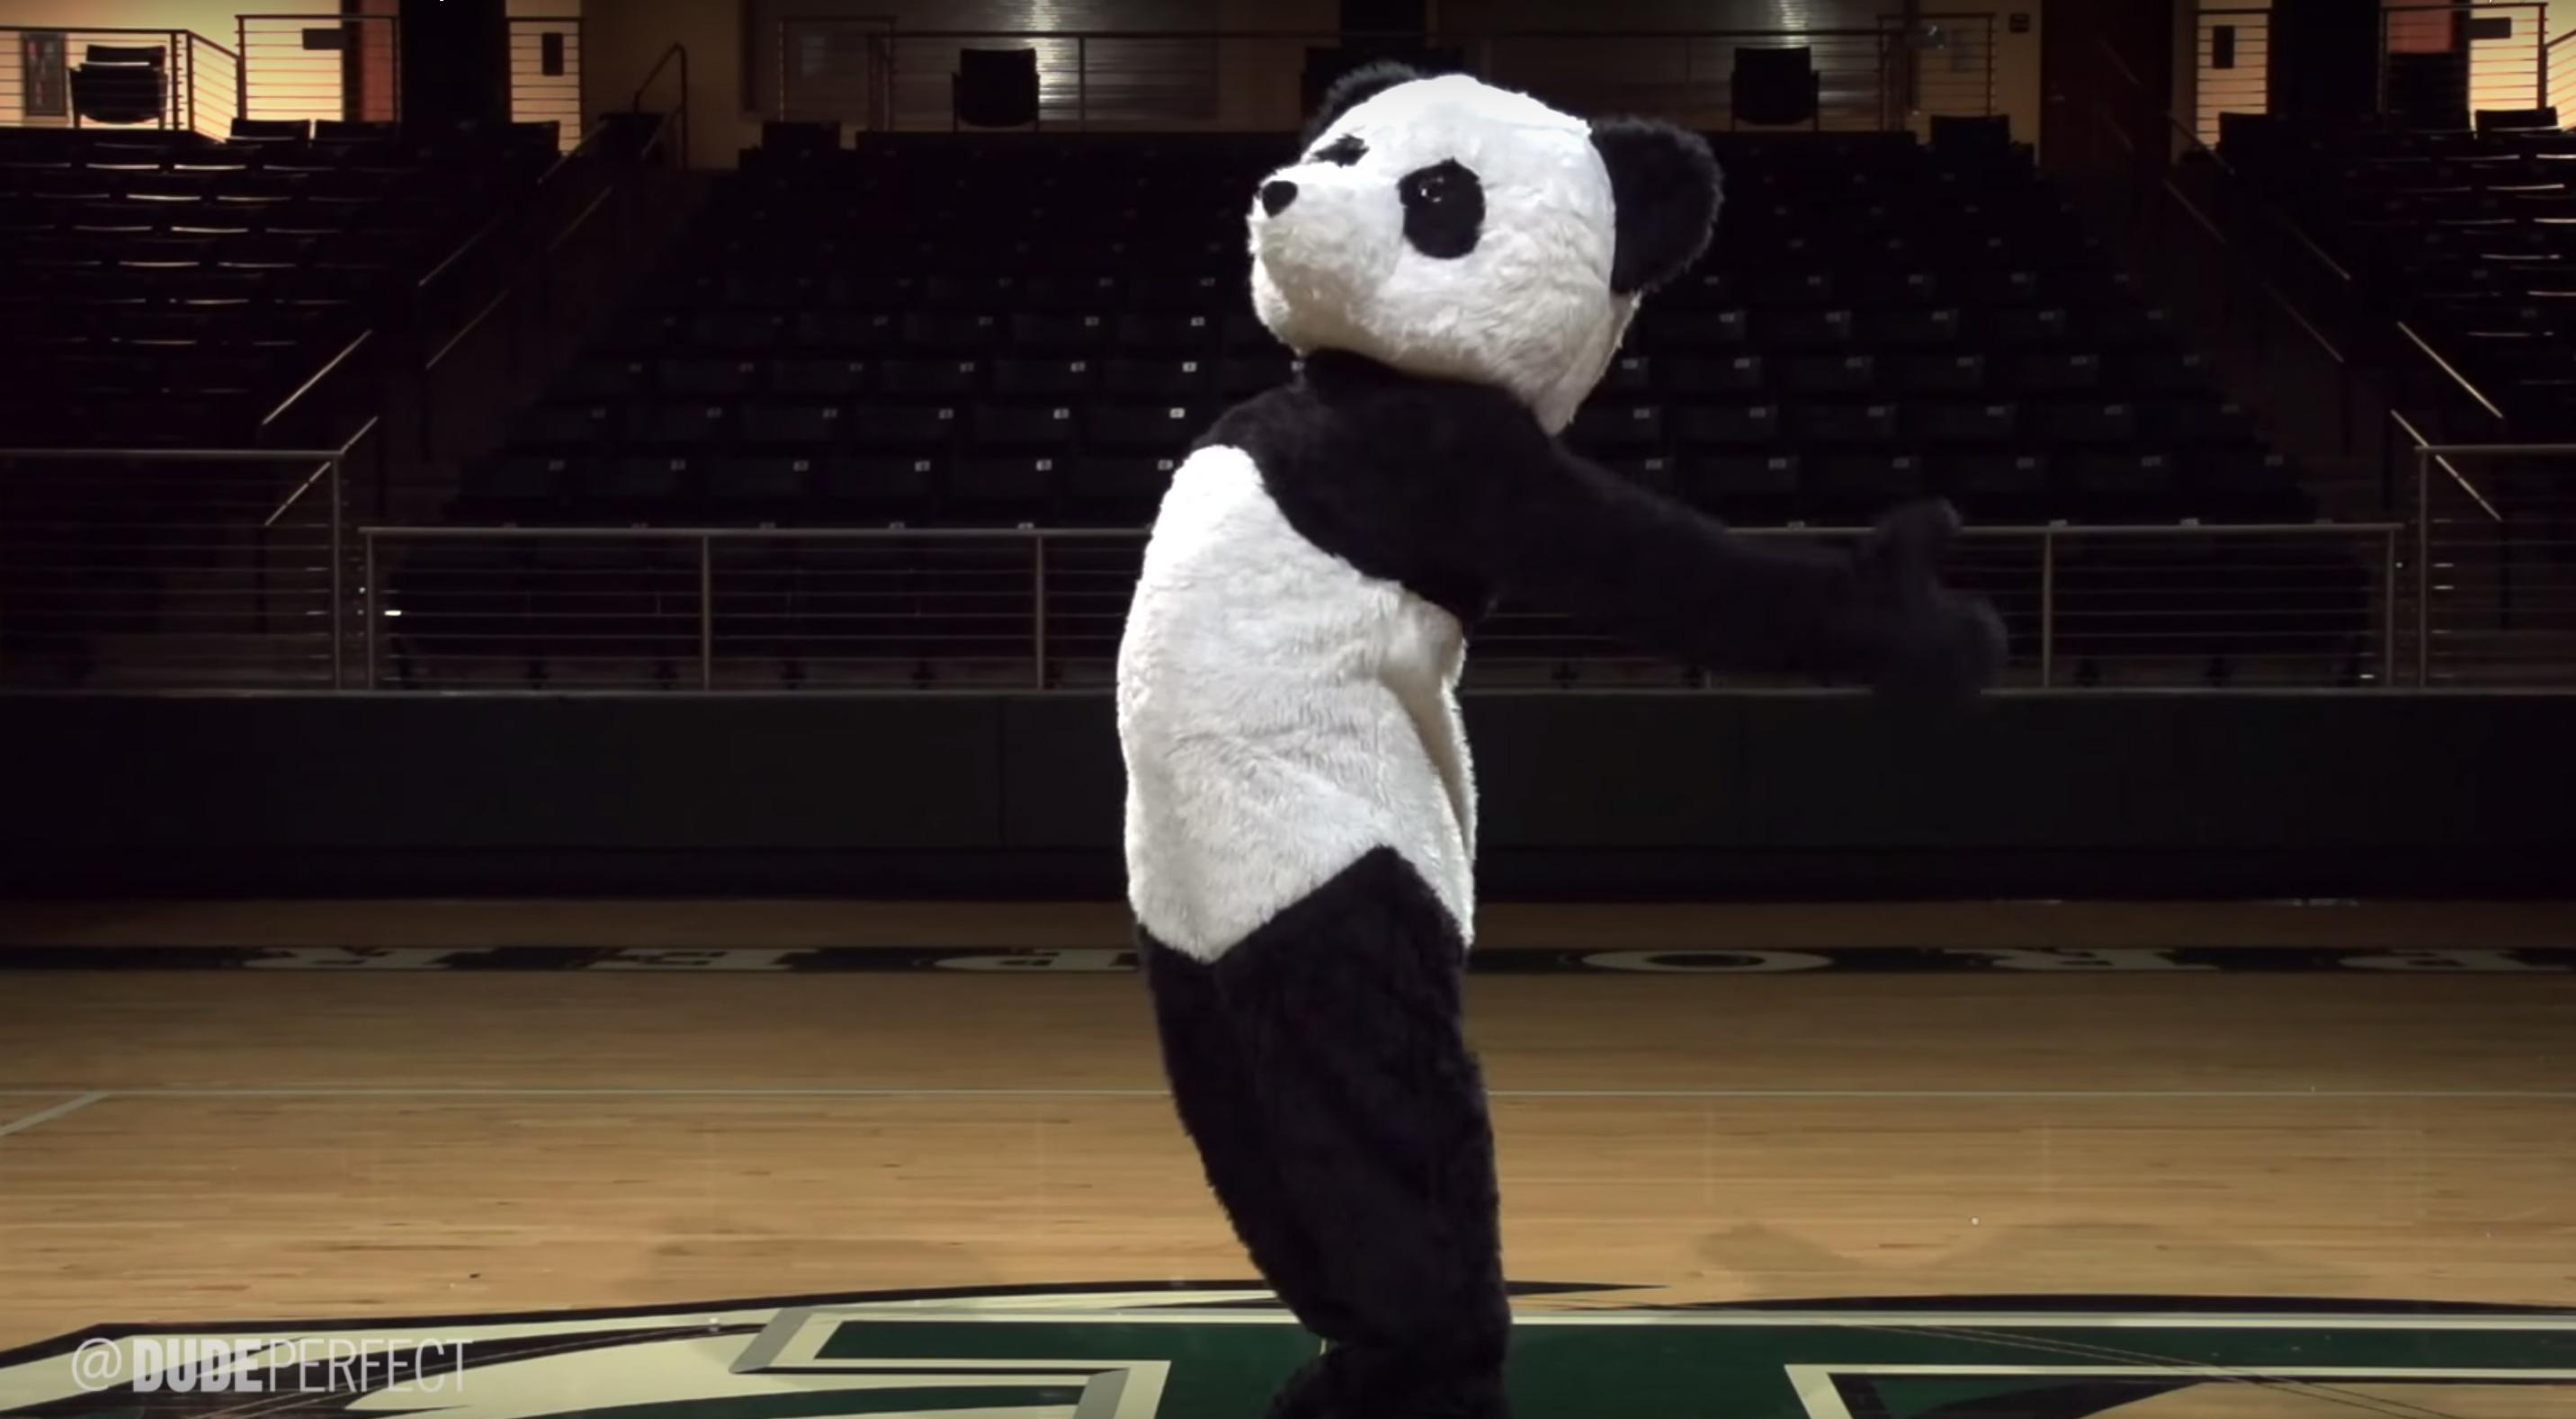 who-is-panda-on-dude-perfect-mascot-1564503707525.jpg